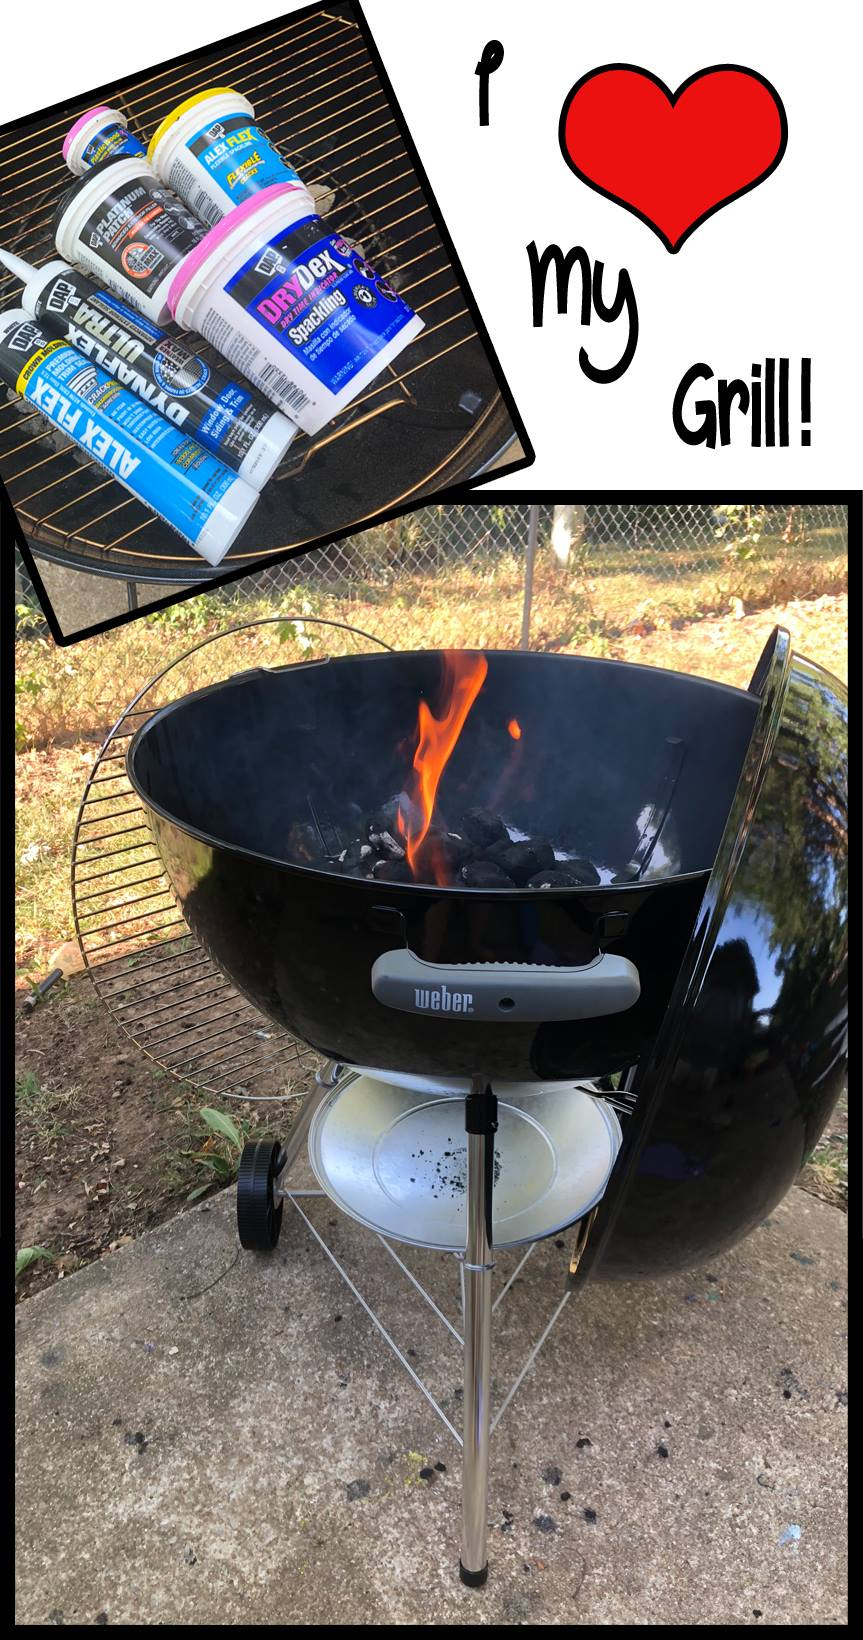 What are your best recipes and foods for summer grilling? See what we love to grill in our Weber Kettle Grill!